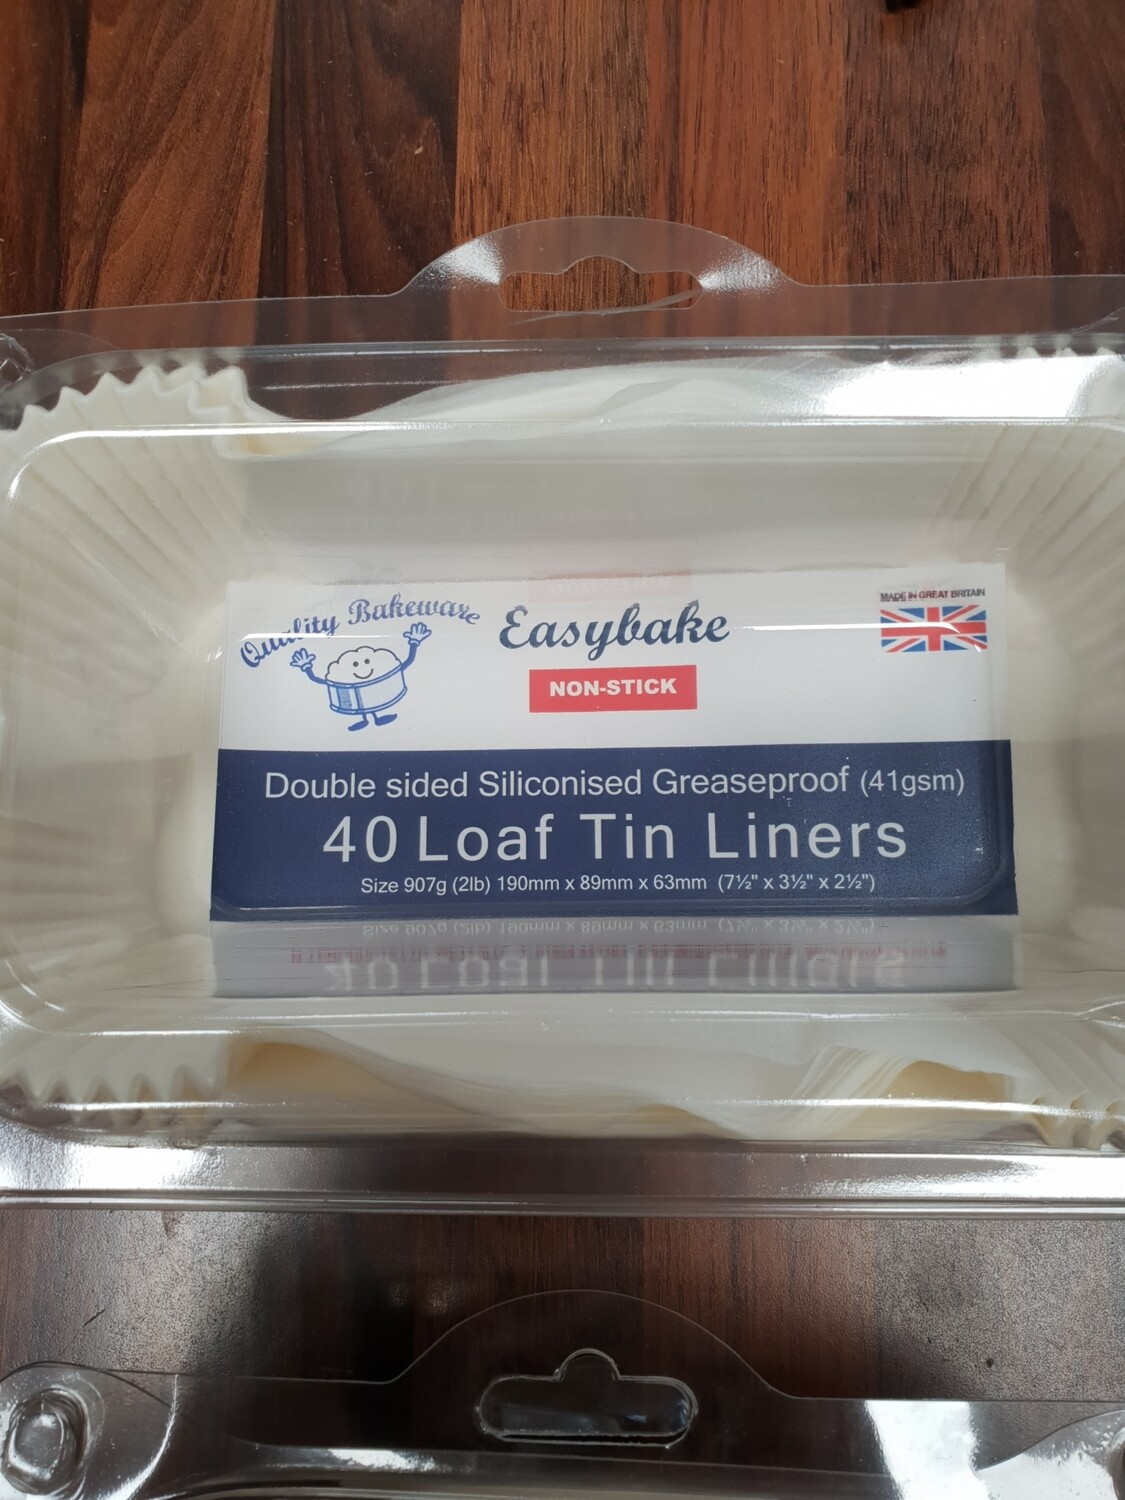 Non-Stick Loaf Tin Liners 2Ib